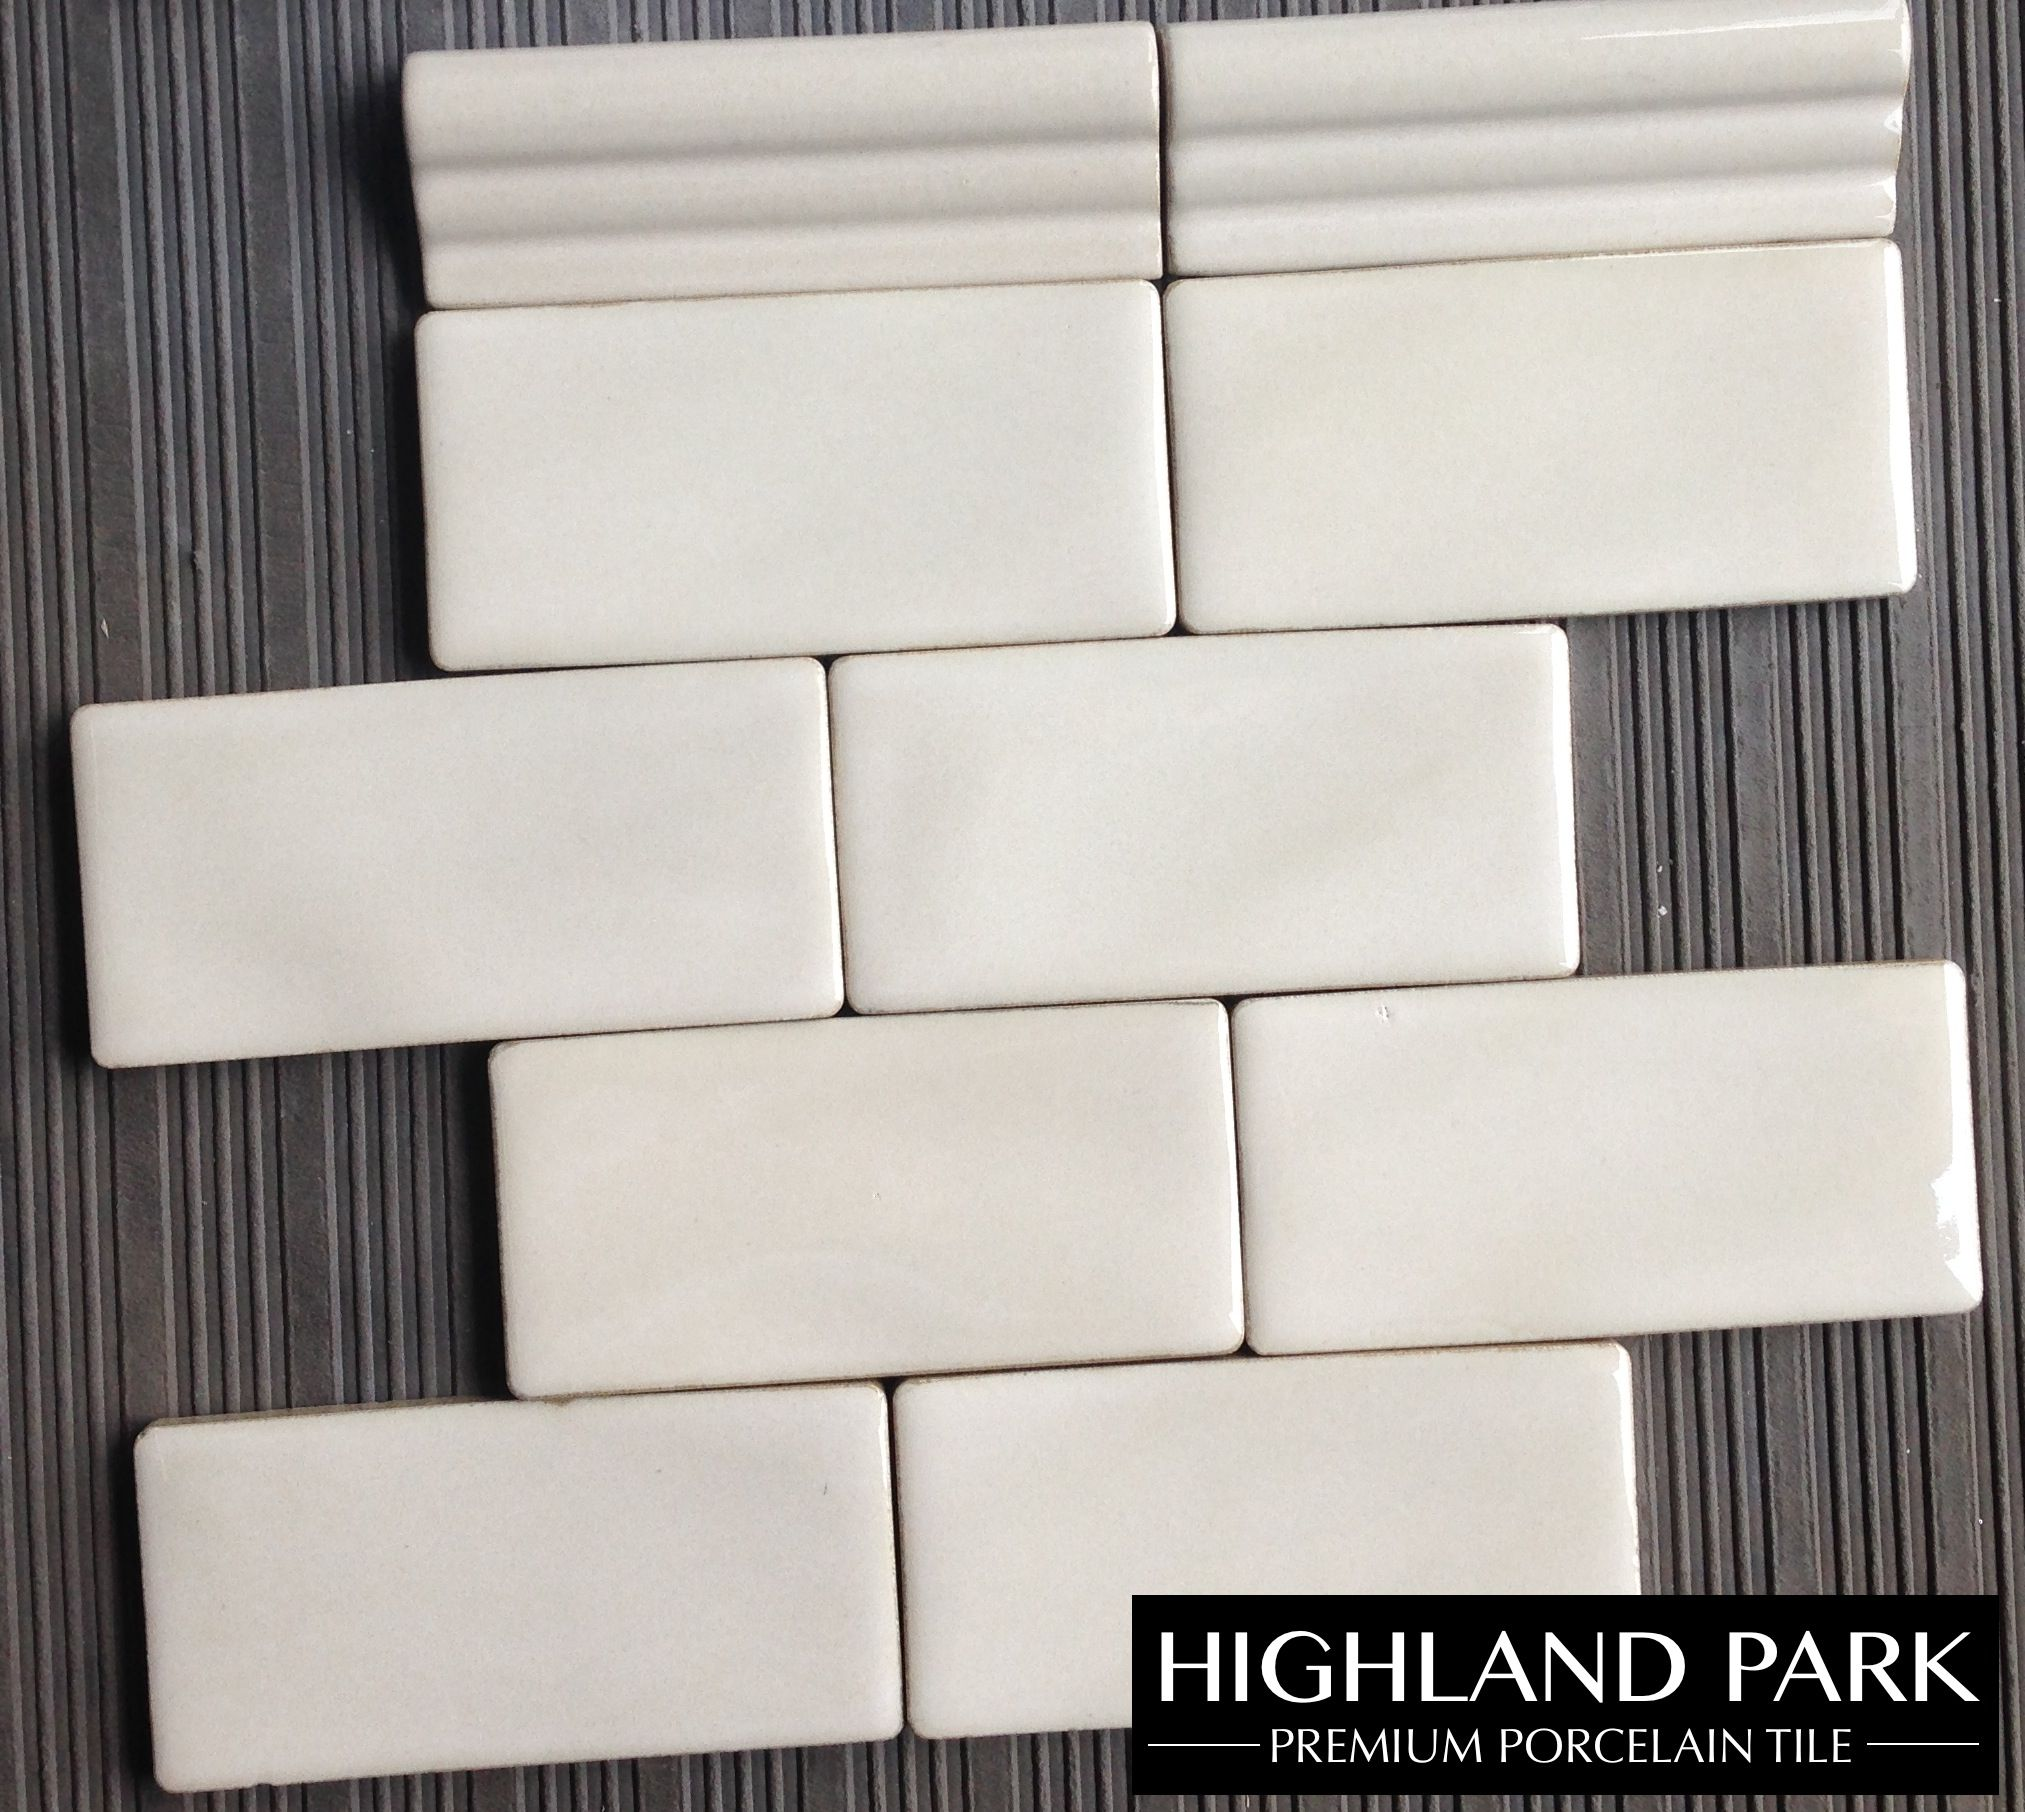 Handcrafted Antique White 3x6 Porcelain 8 50 A Square Foot Available Online From T White Ceramic Tiles Custom Cabinetry White Subway Tiles Kitchen Backsplash